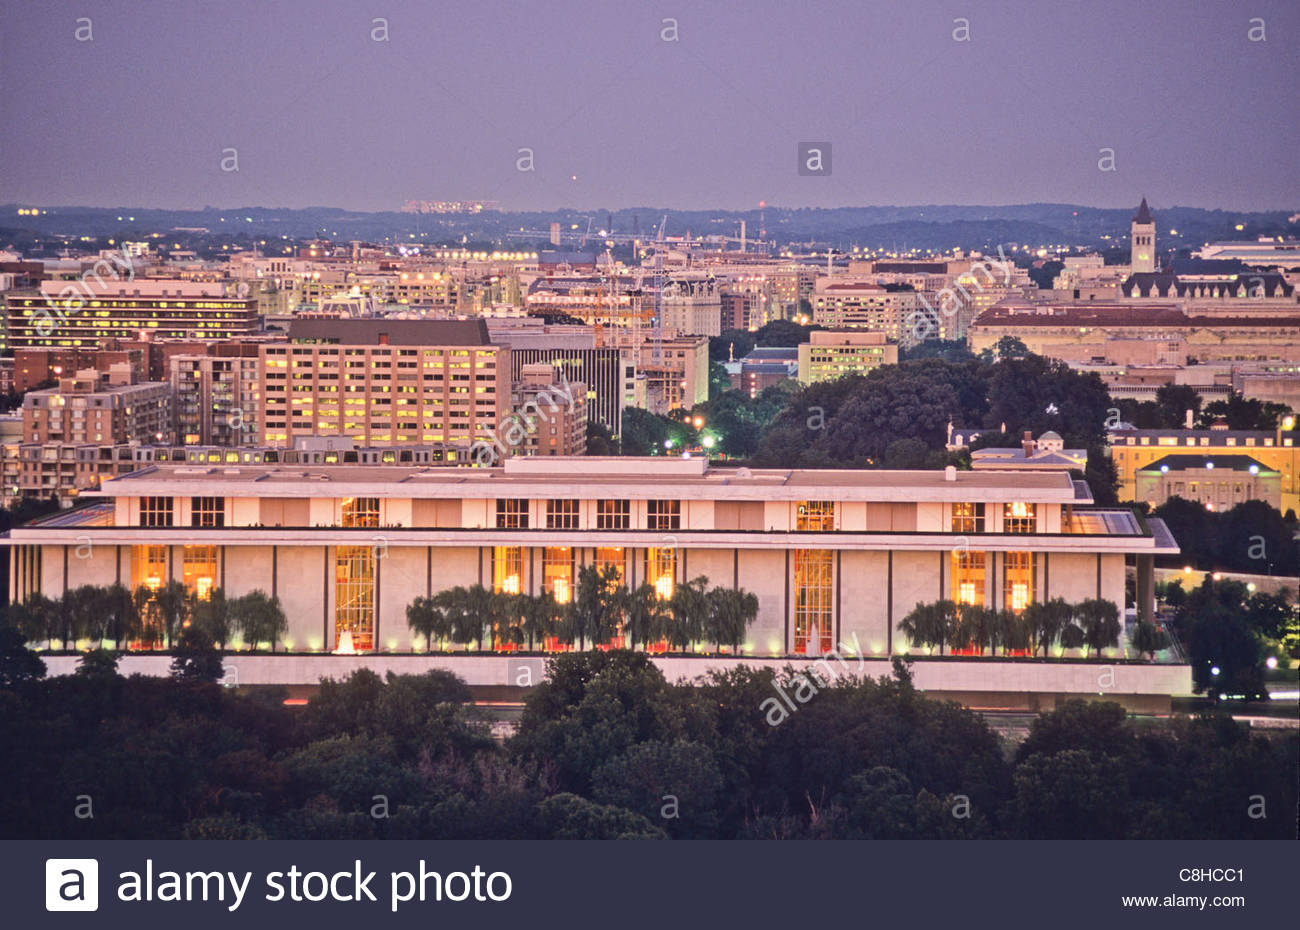 Air view of Kennedy Center for Performing Arts. - Stock Image